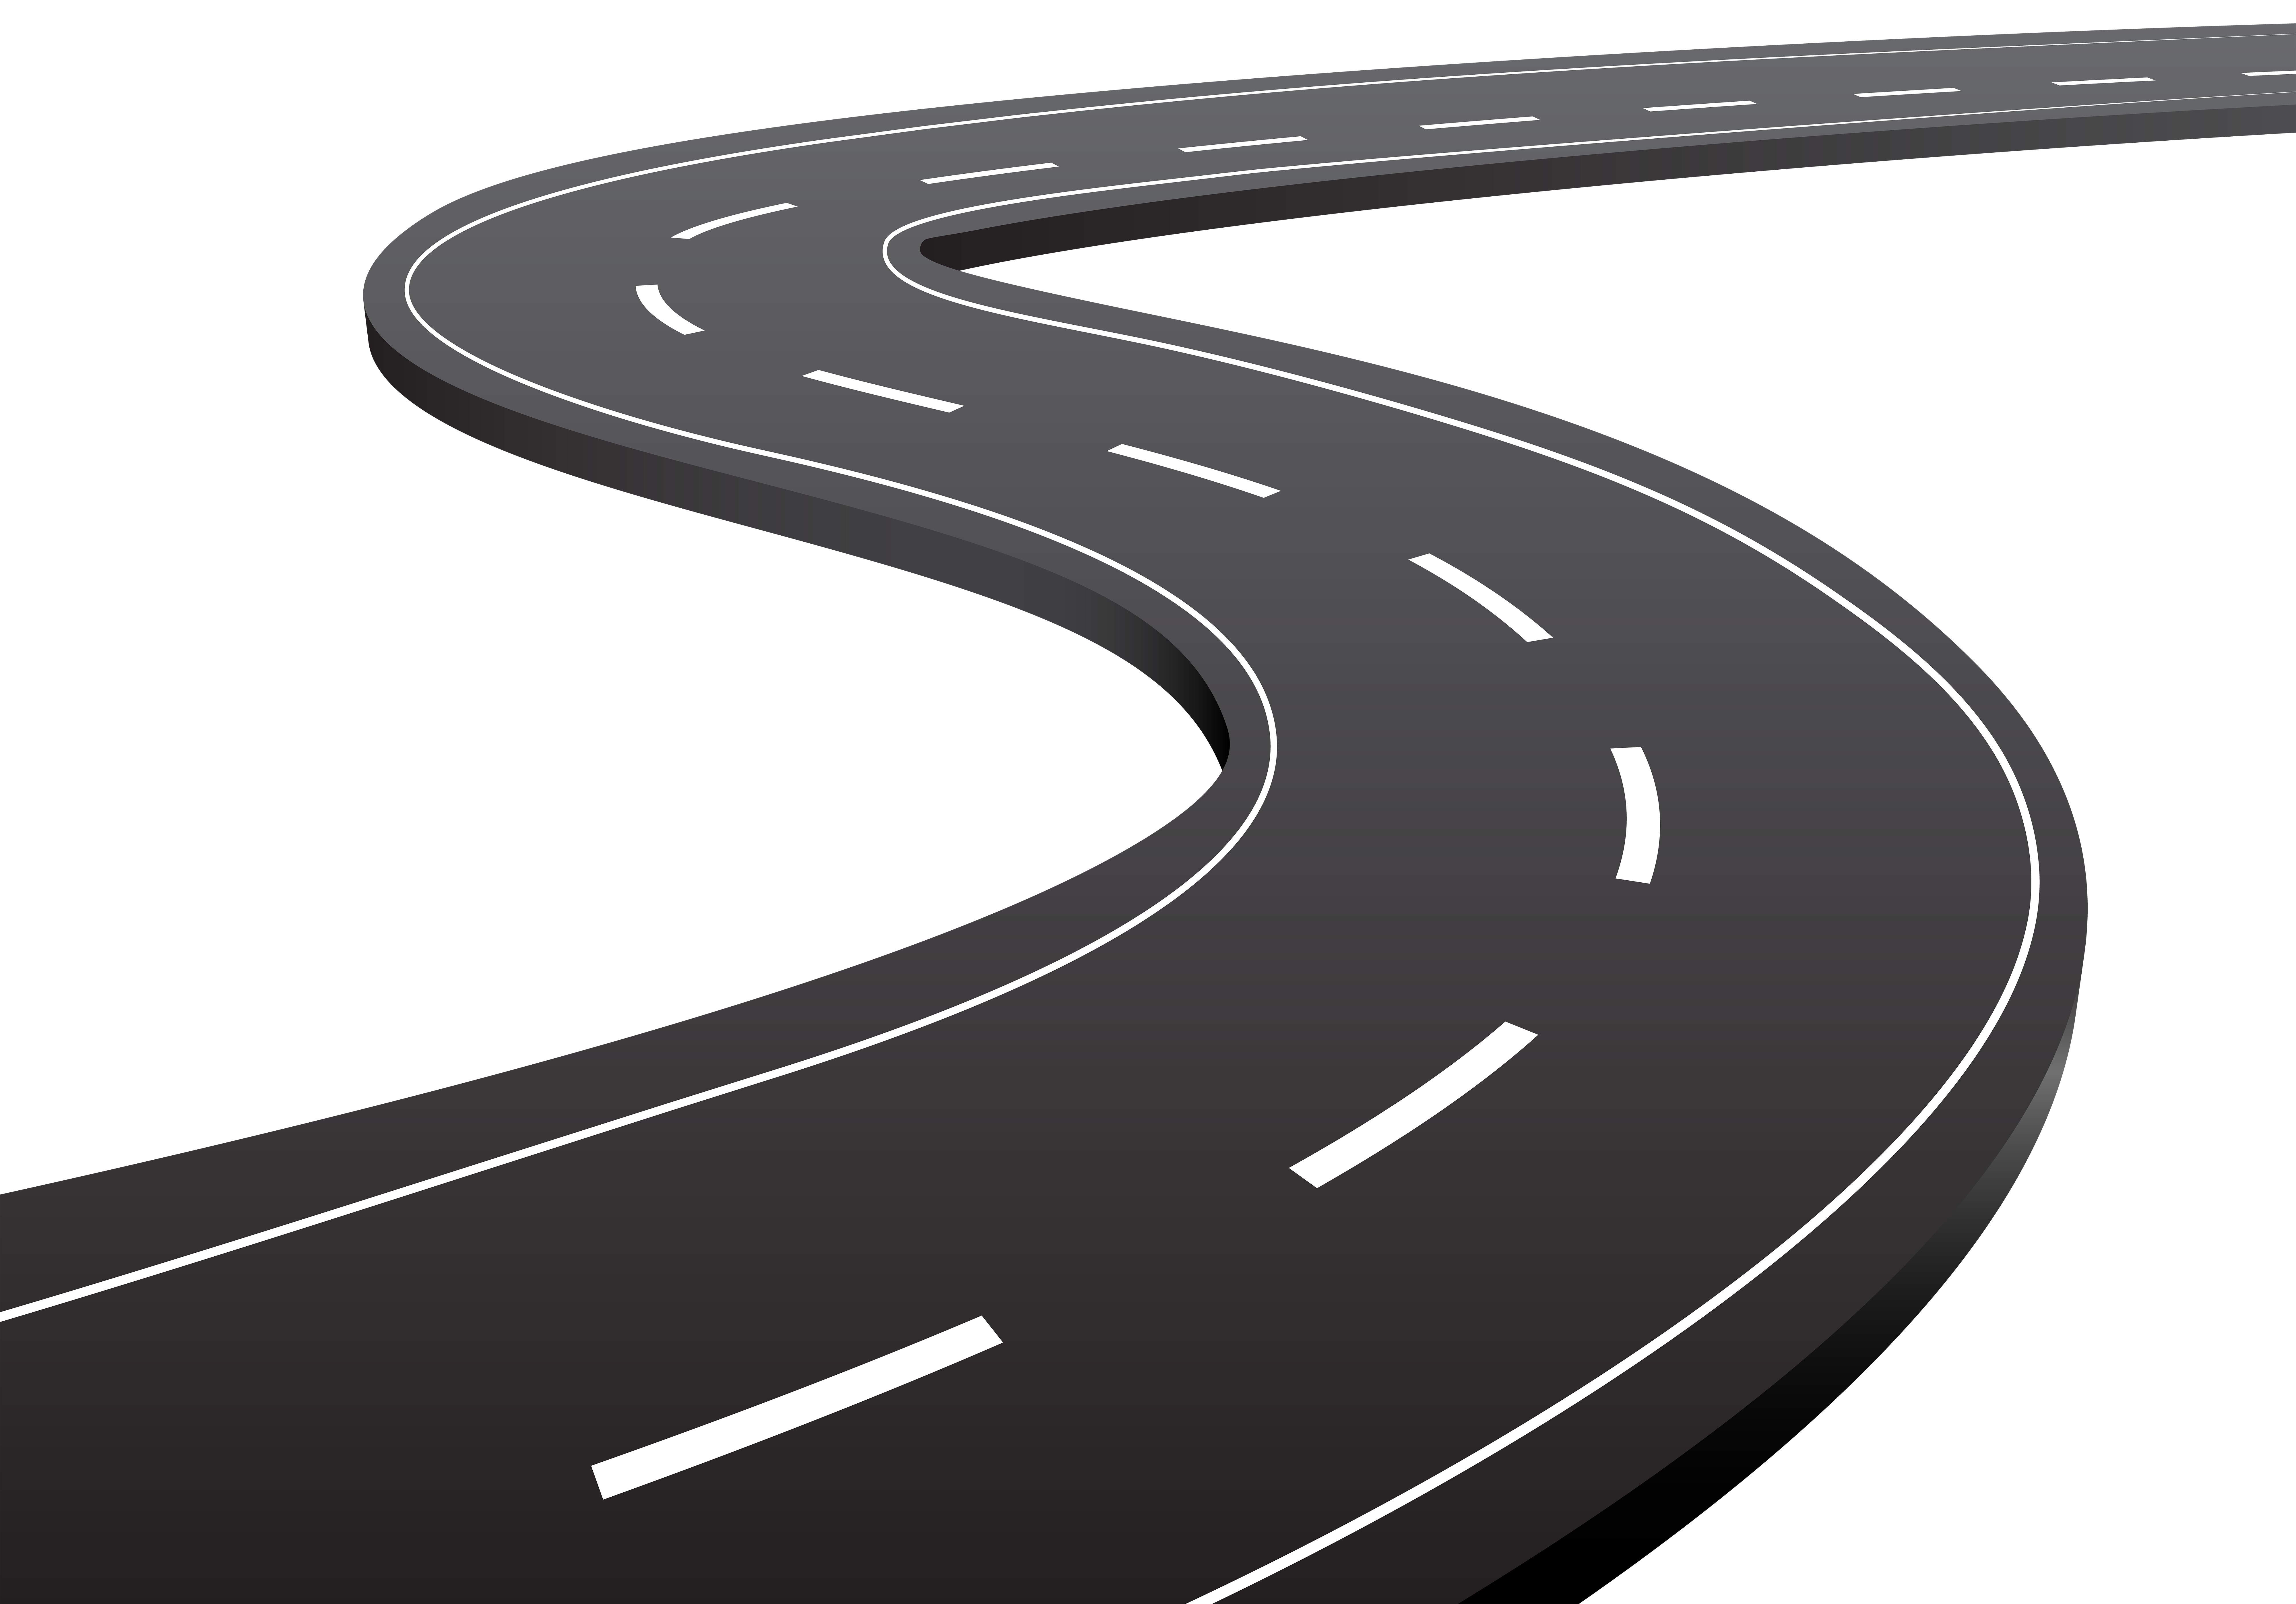 Pathway clipart road, Pathway road Transparent FREE for ...